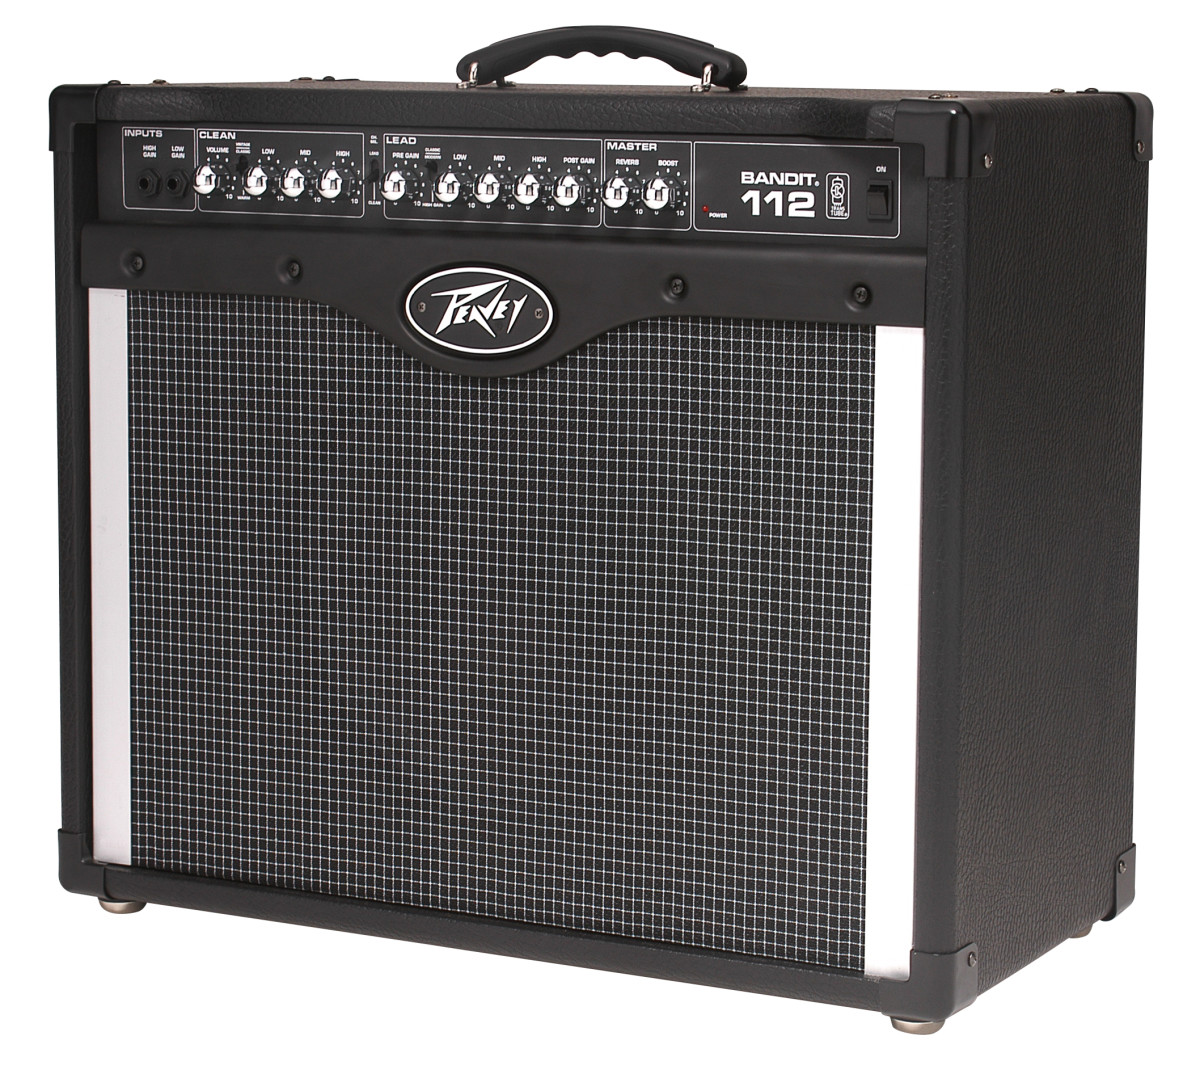 The Peavey Bandit is an affordable, powerful, solid-state amp with outstanding metal tone.